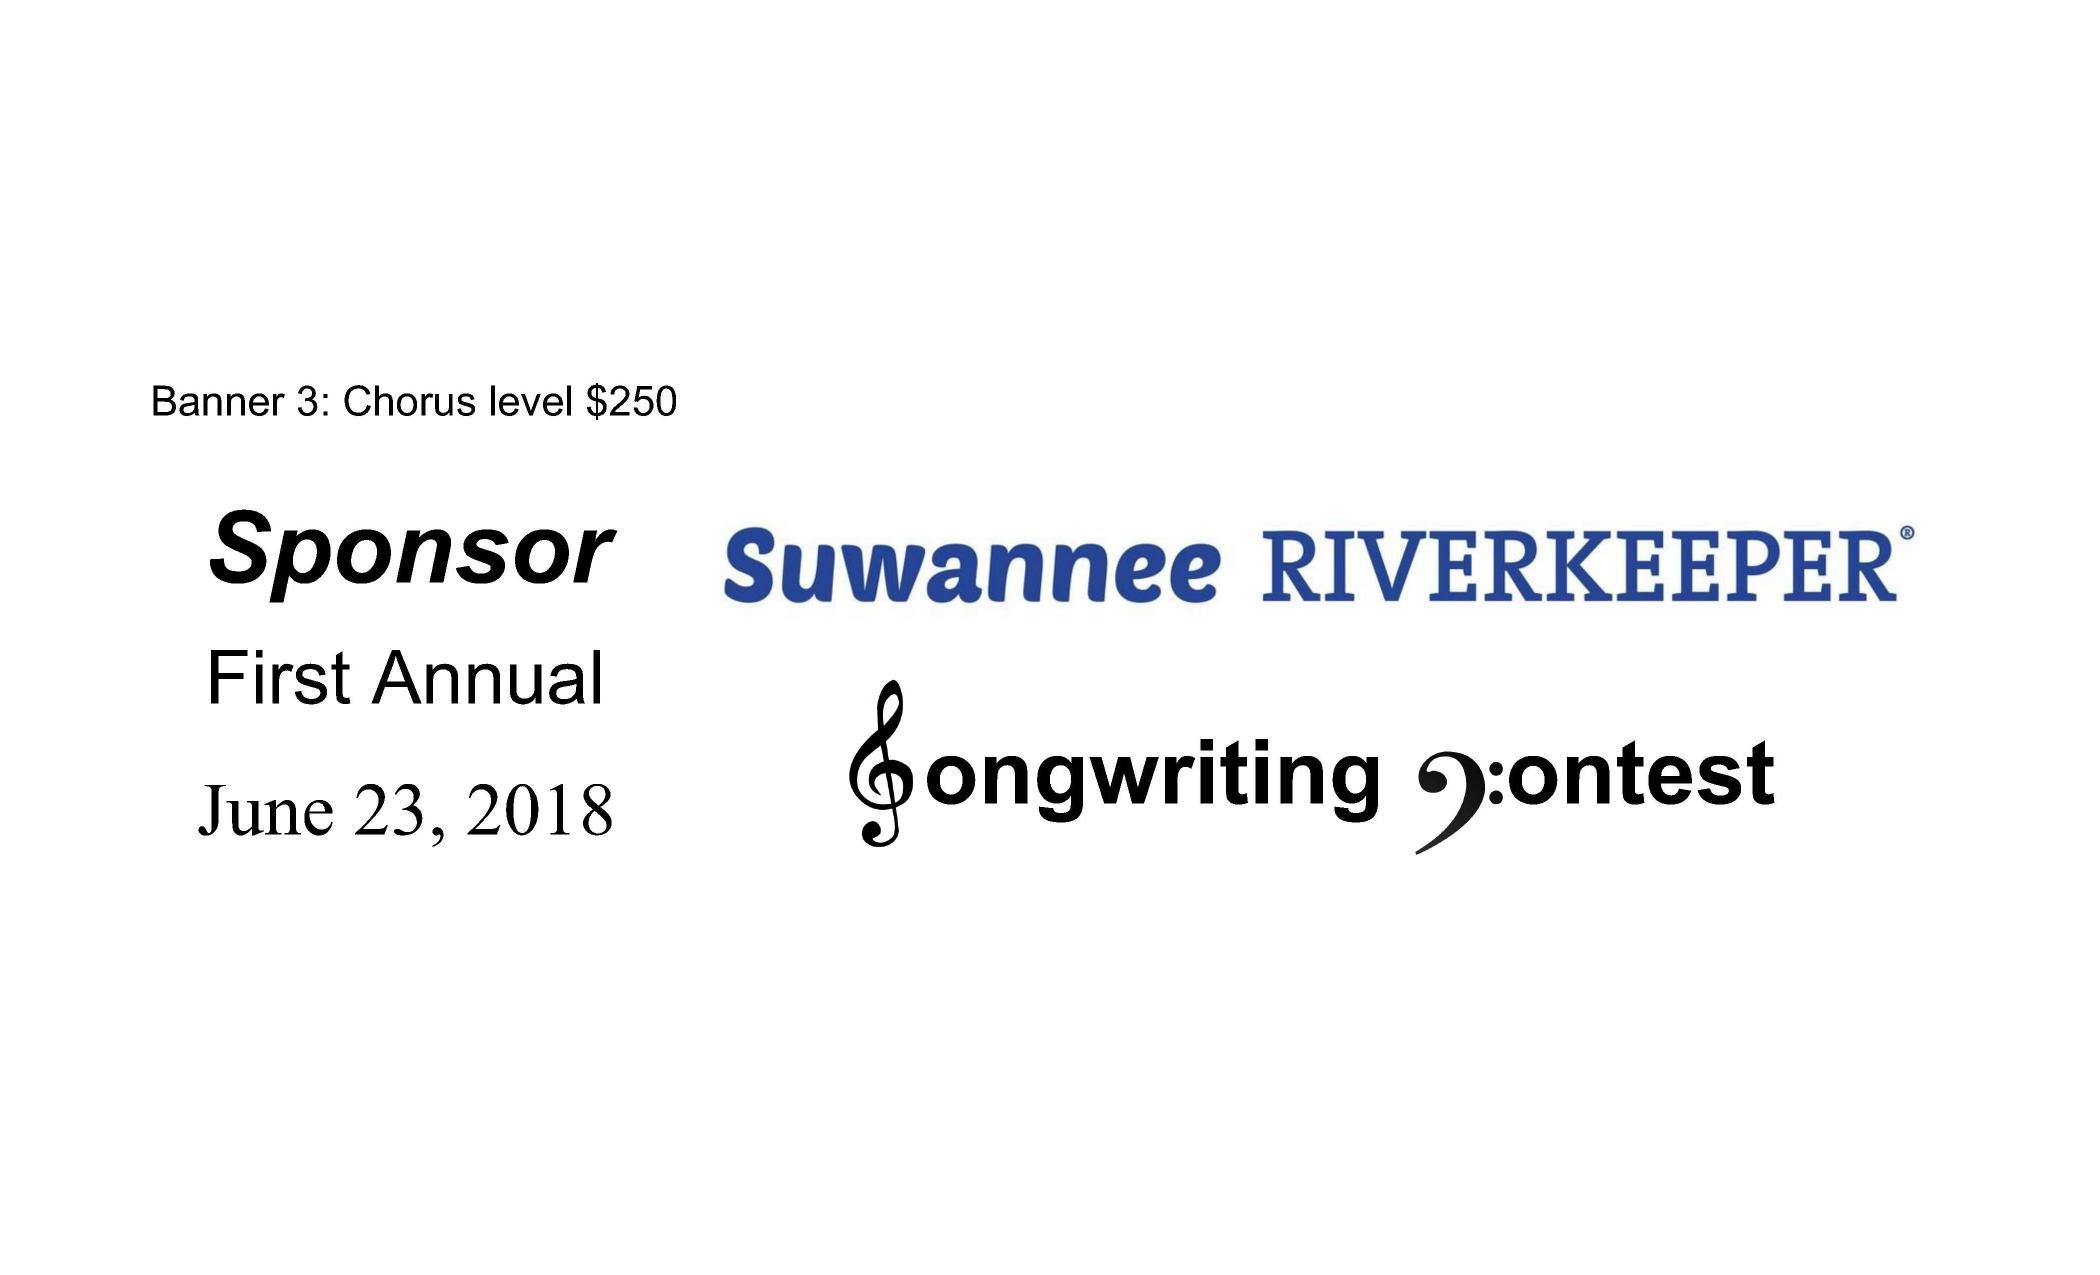 2100x1275 Chorus level  sponsor, Sponsor Banners, in Suwannee Riverkeeper Songwriting Contest, by John S. Quarterman, for WWALS.net, 29 March 2018